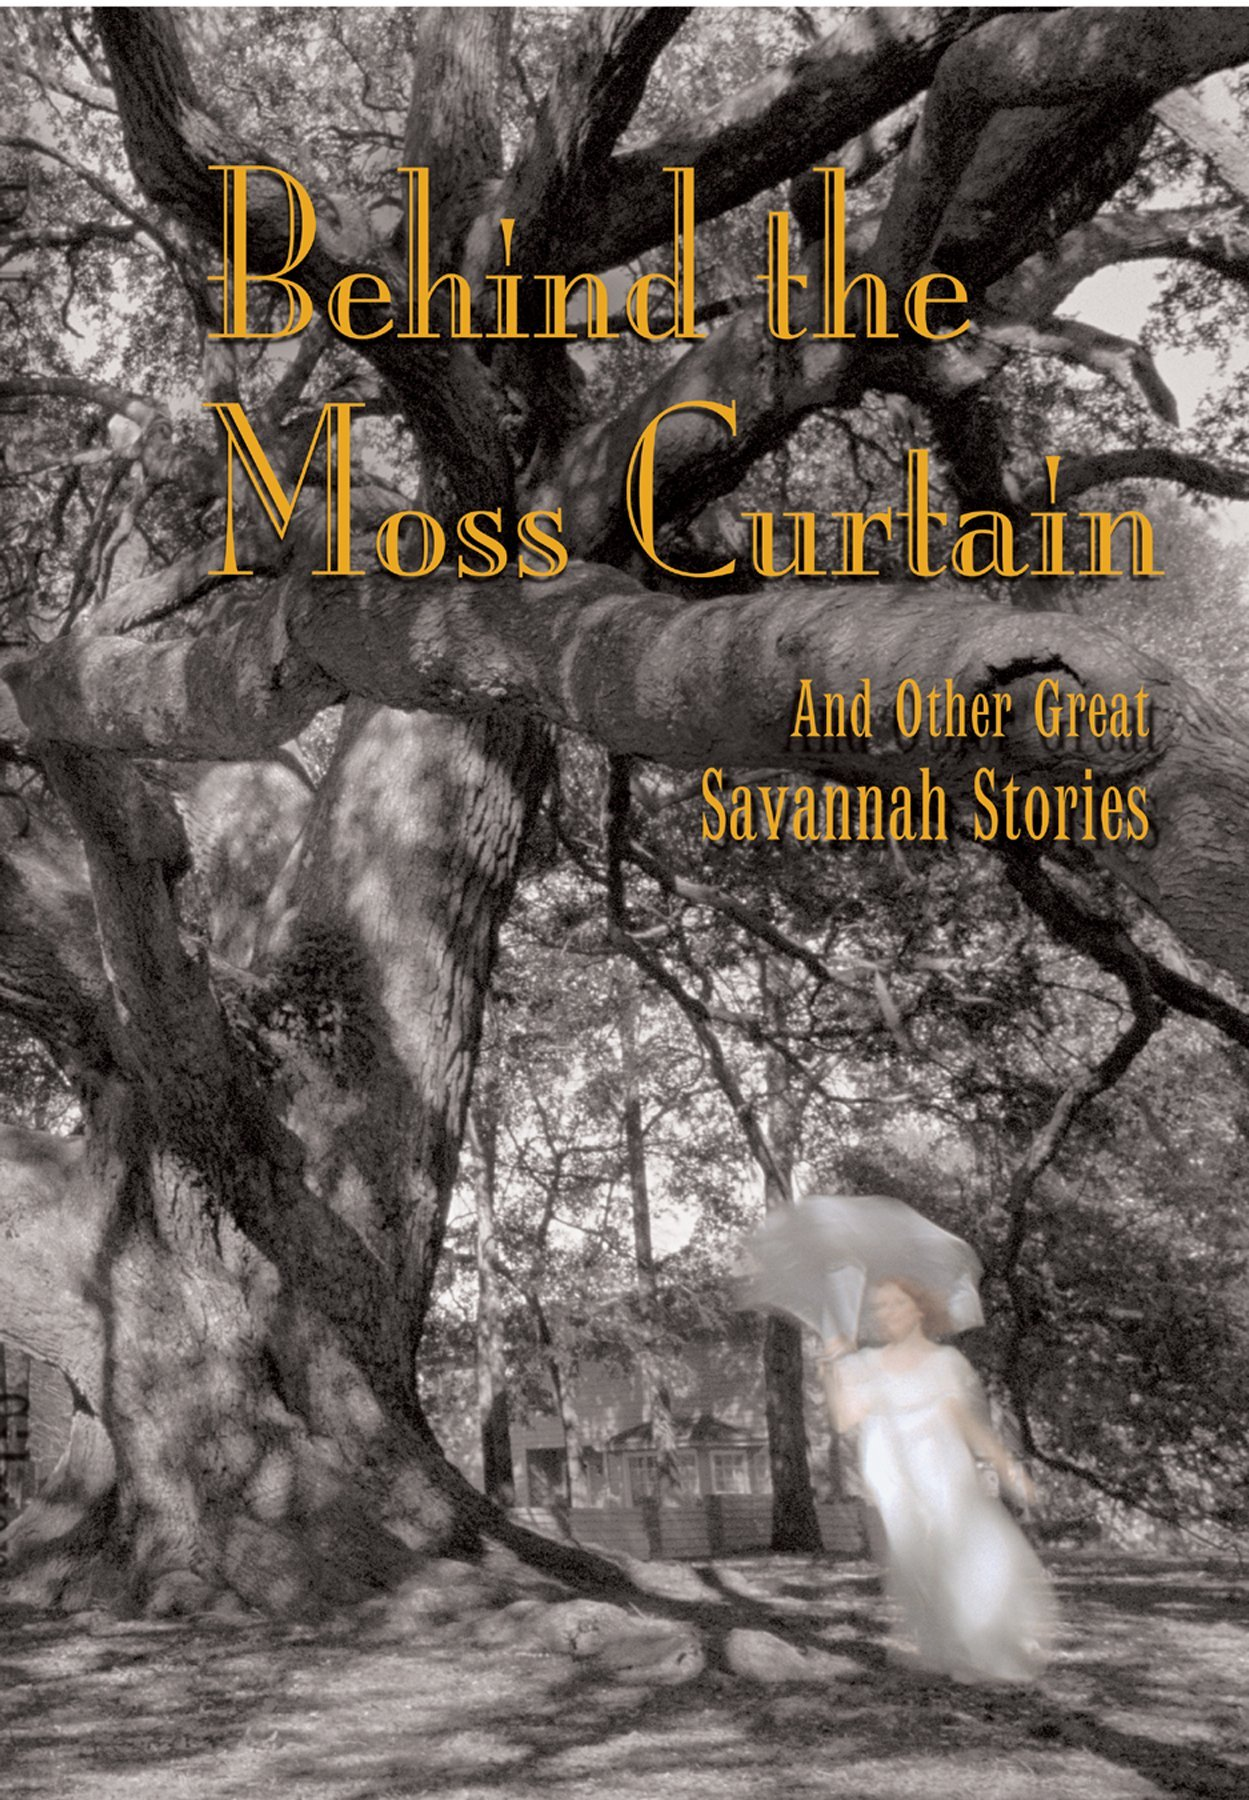 Behind The Moss Curtain: And Other Great Savannah Stories: Murray Silver,  Cristina Piva: 9780972422406: Amazon.com: Books